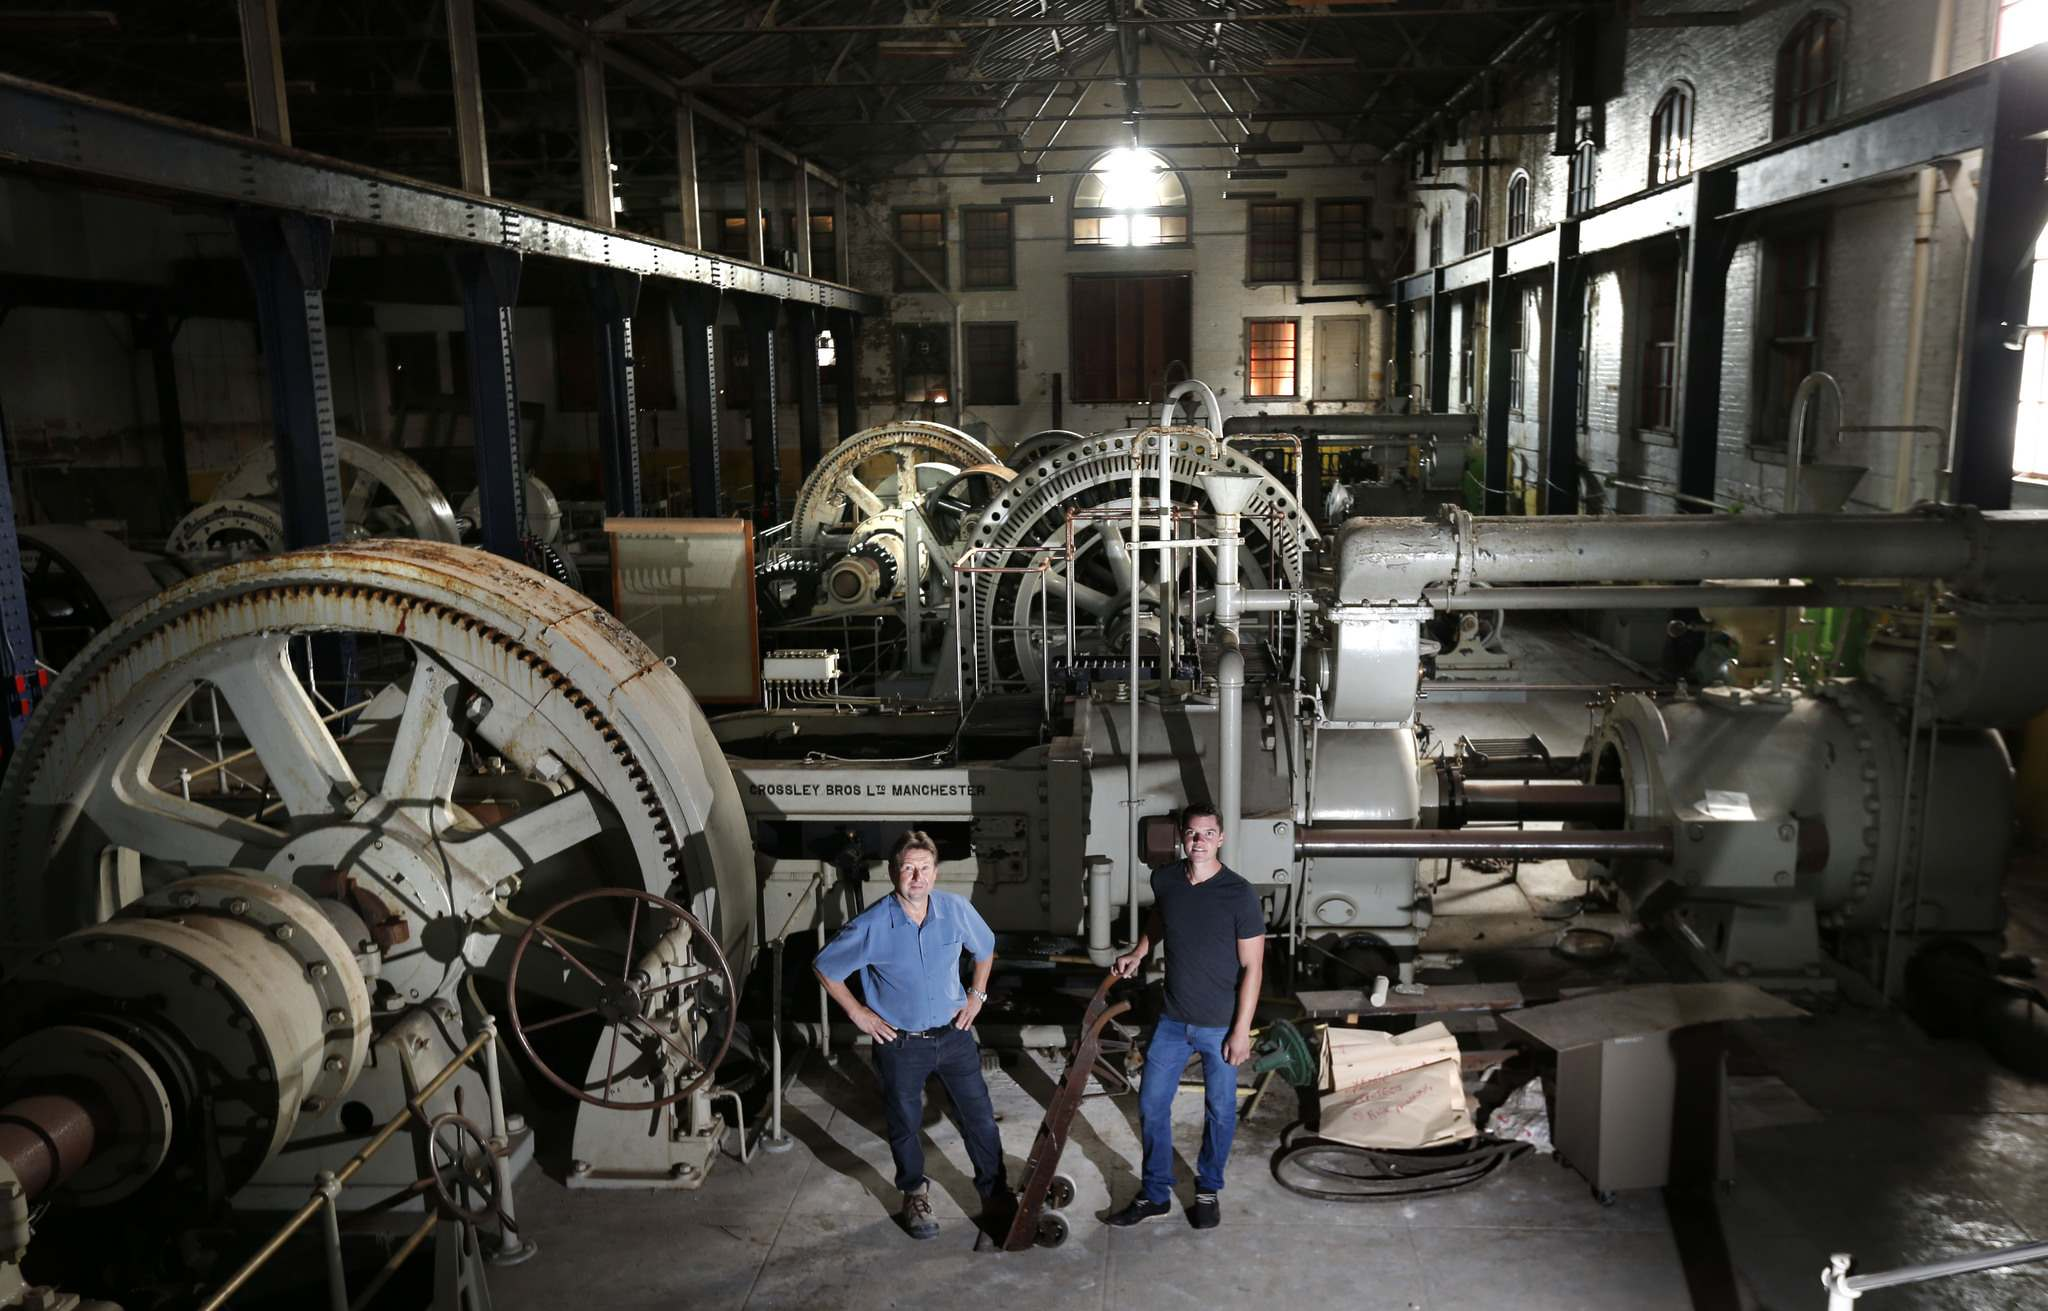 WAYNE GLOWACKI / WINNIPEG FREE PRESS</p><p>Bryce Alston (left) and Rick Hofer plan to convert the James Avenue pumping station into a residential-retail-office complex.</p></p>